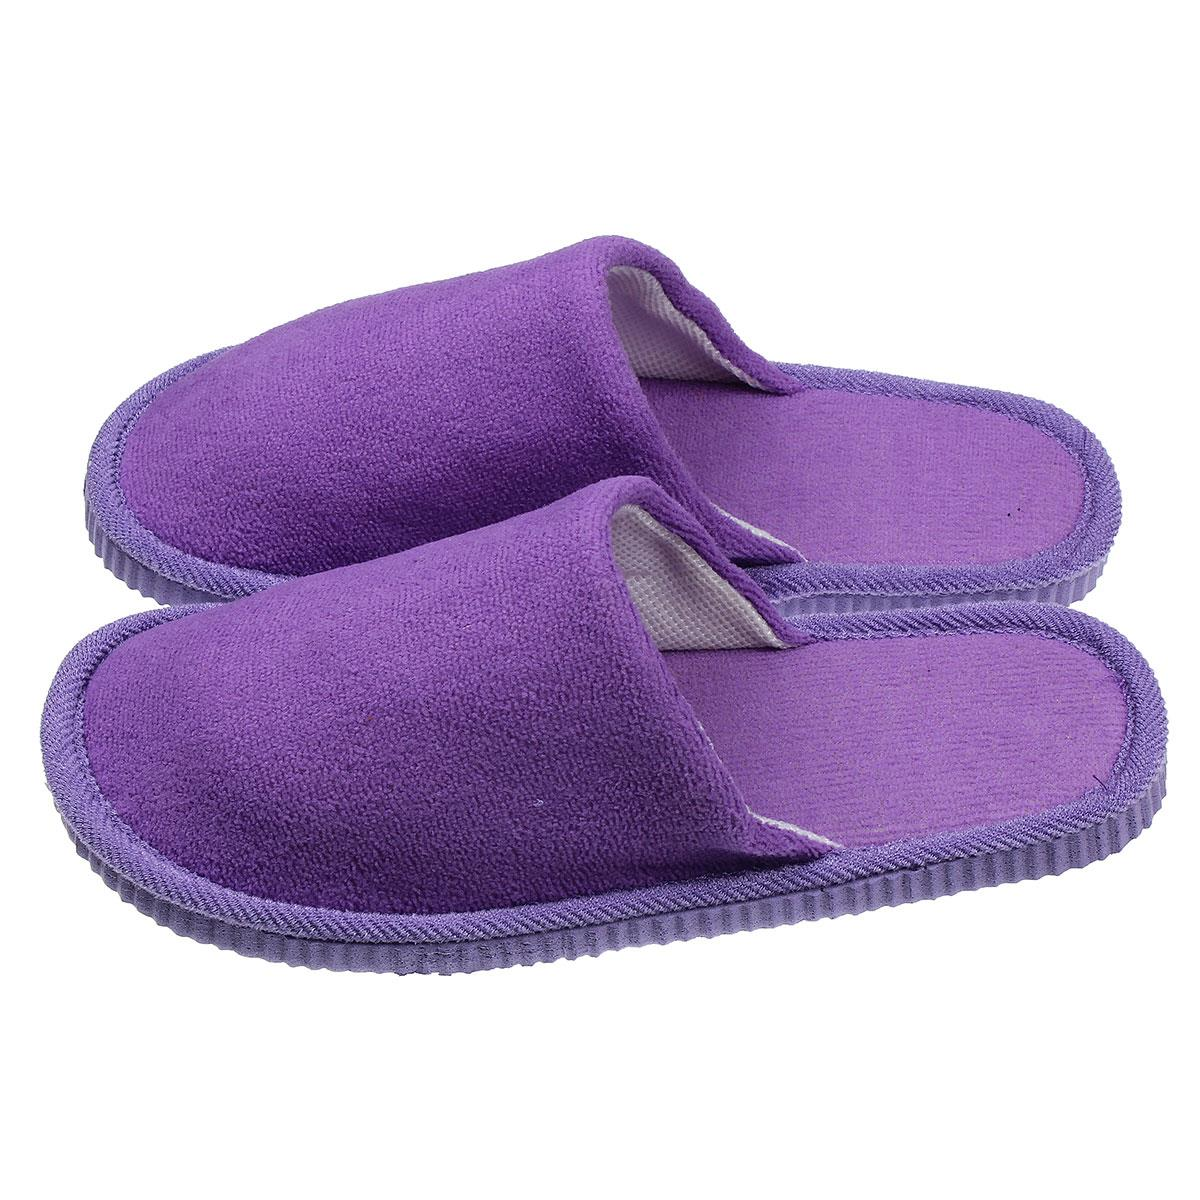 Compare Prices on Bedroom Slippers- Online Shopping/Buy Low Price ...